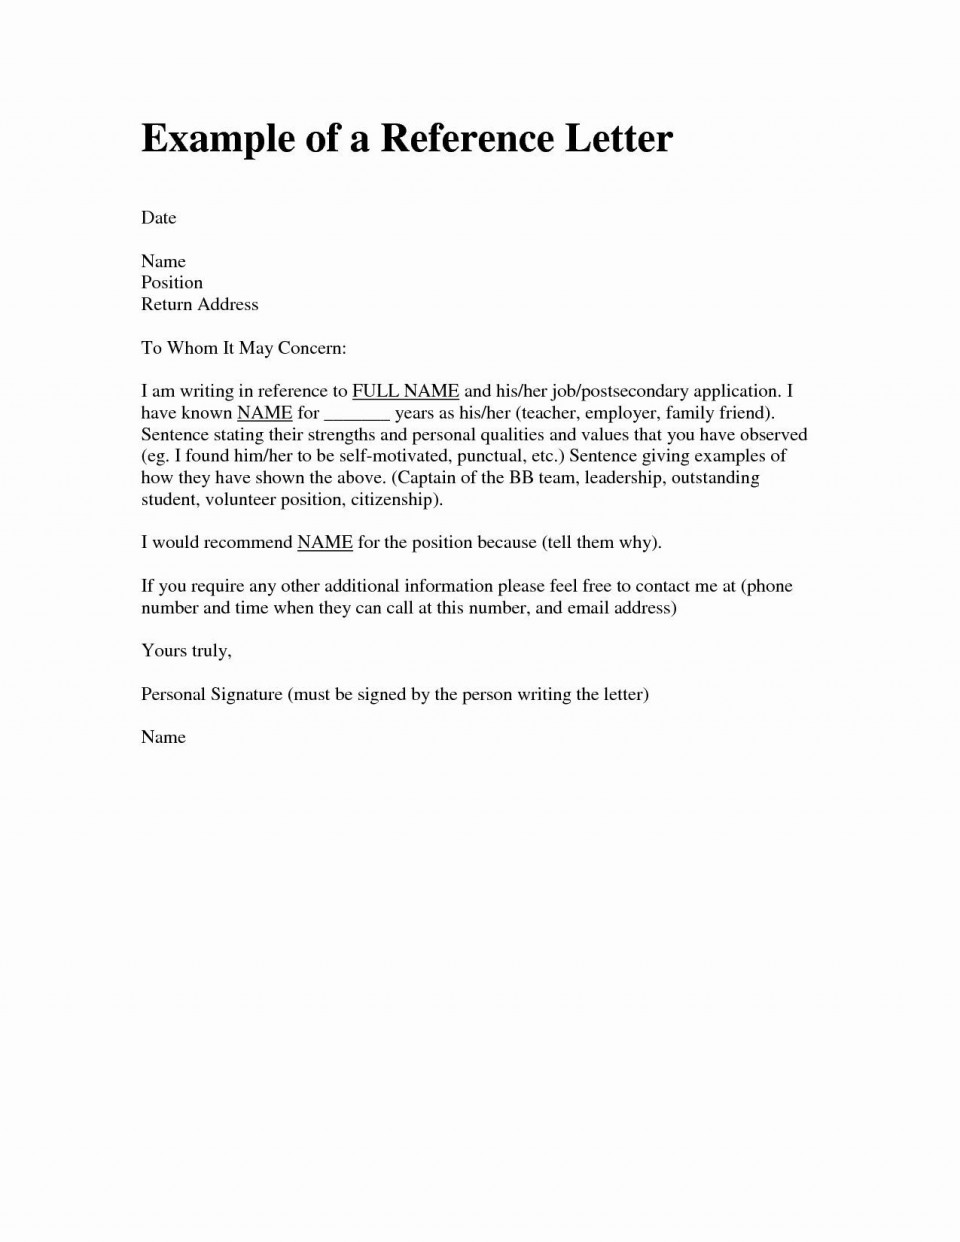 003 Astounding Letter Of Recomendation Template Image  Reference For Employment Sample Recommendation Teacher Student From Employer960